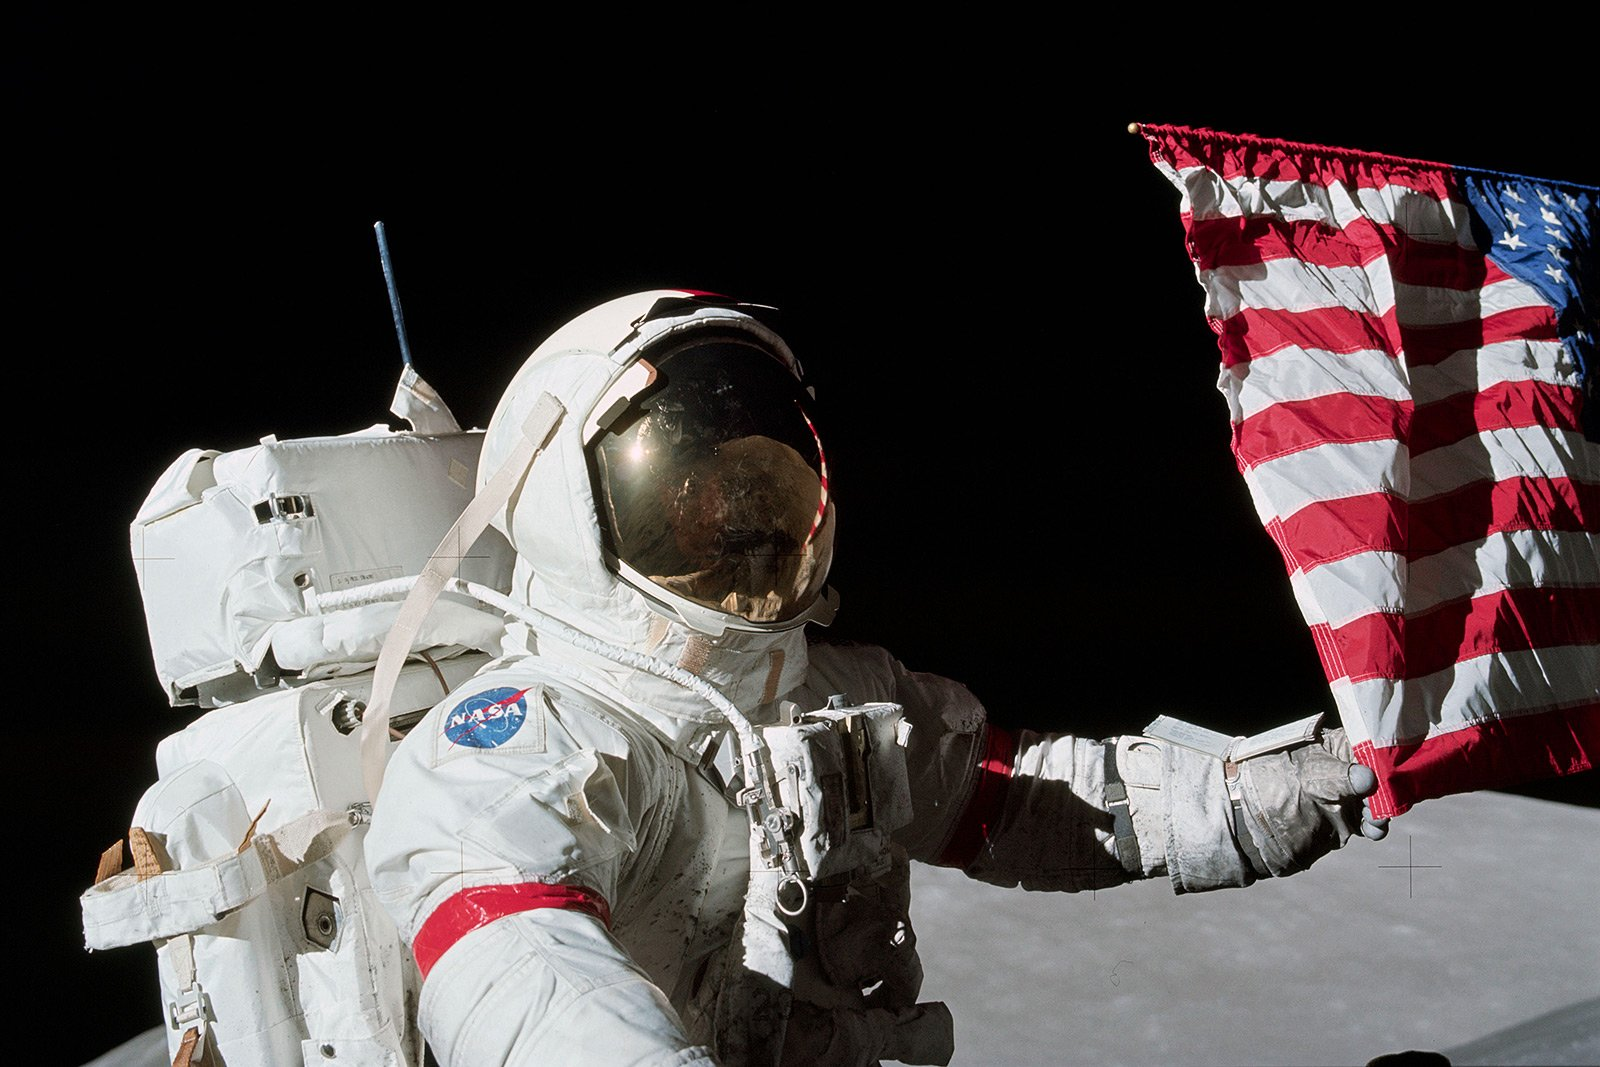 How to take a selfie with American flag as a background on the Moon